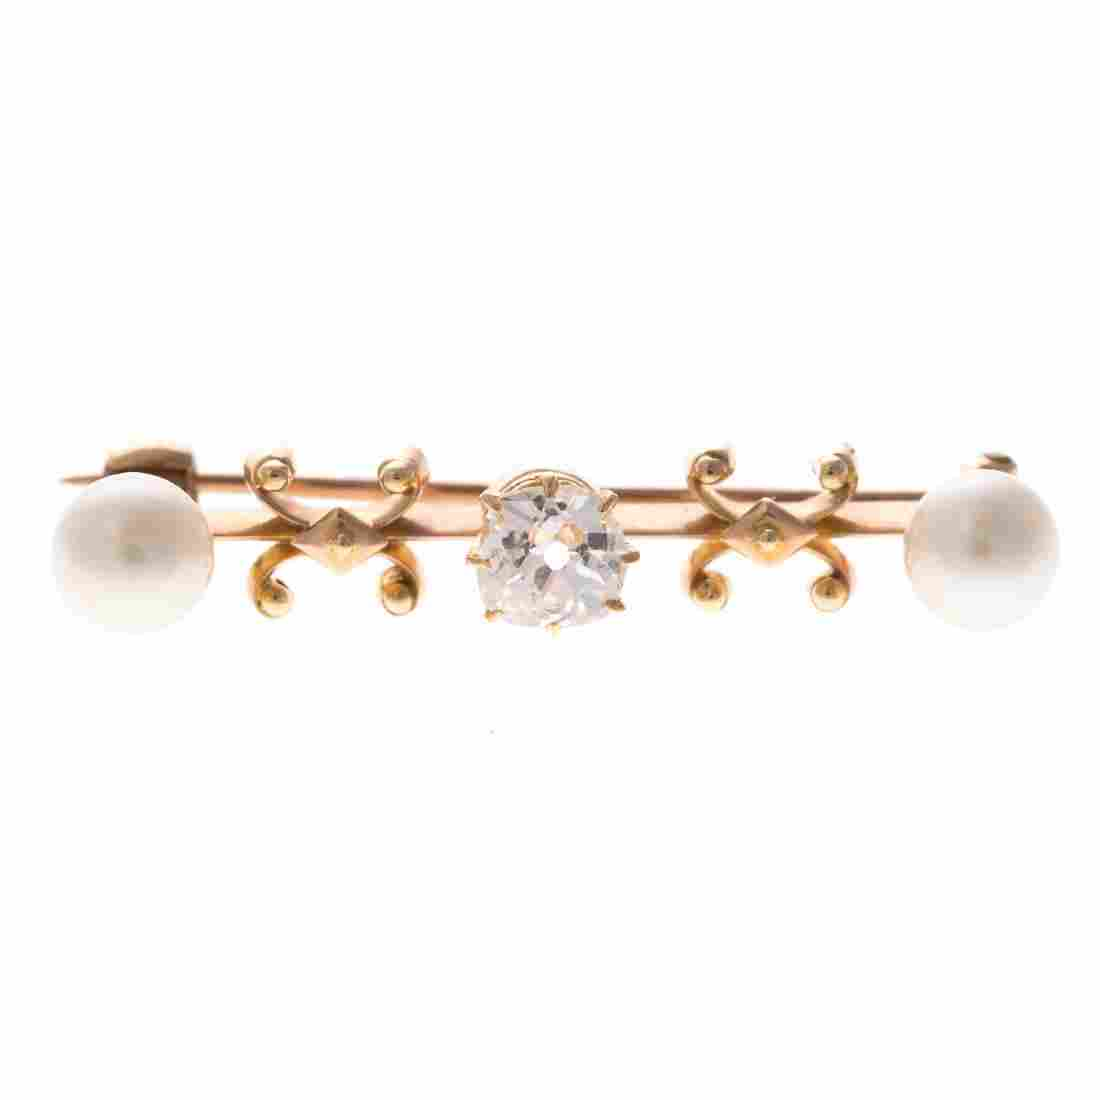 A Lady's Victorian Diamond & Pearl Bar Pin in 14K